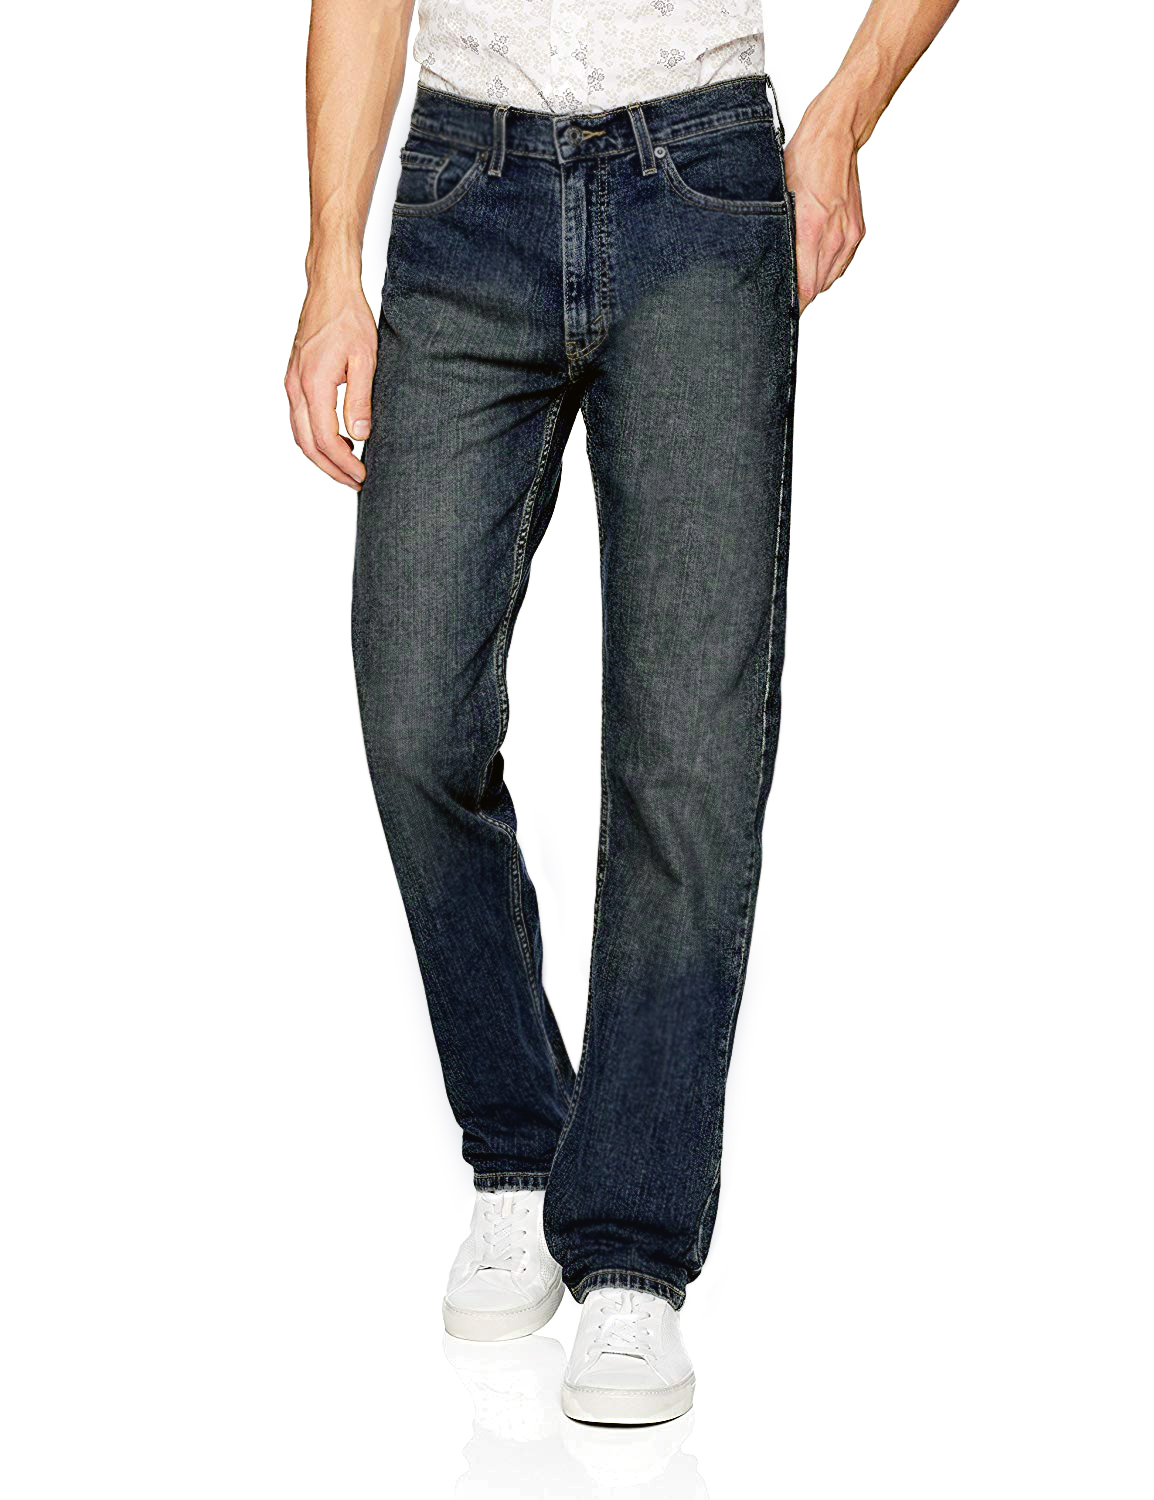 bce8f0125e2 Details about Levi's Jeans Signature Gold By Levi Strauss NEW Men's Classic  Flex Fit Jeans